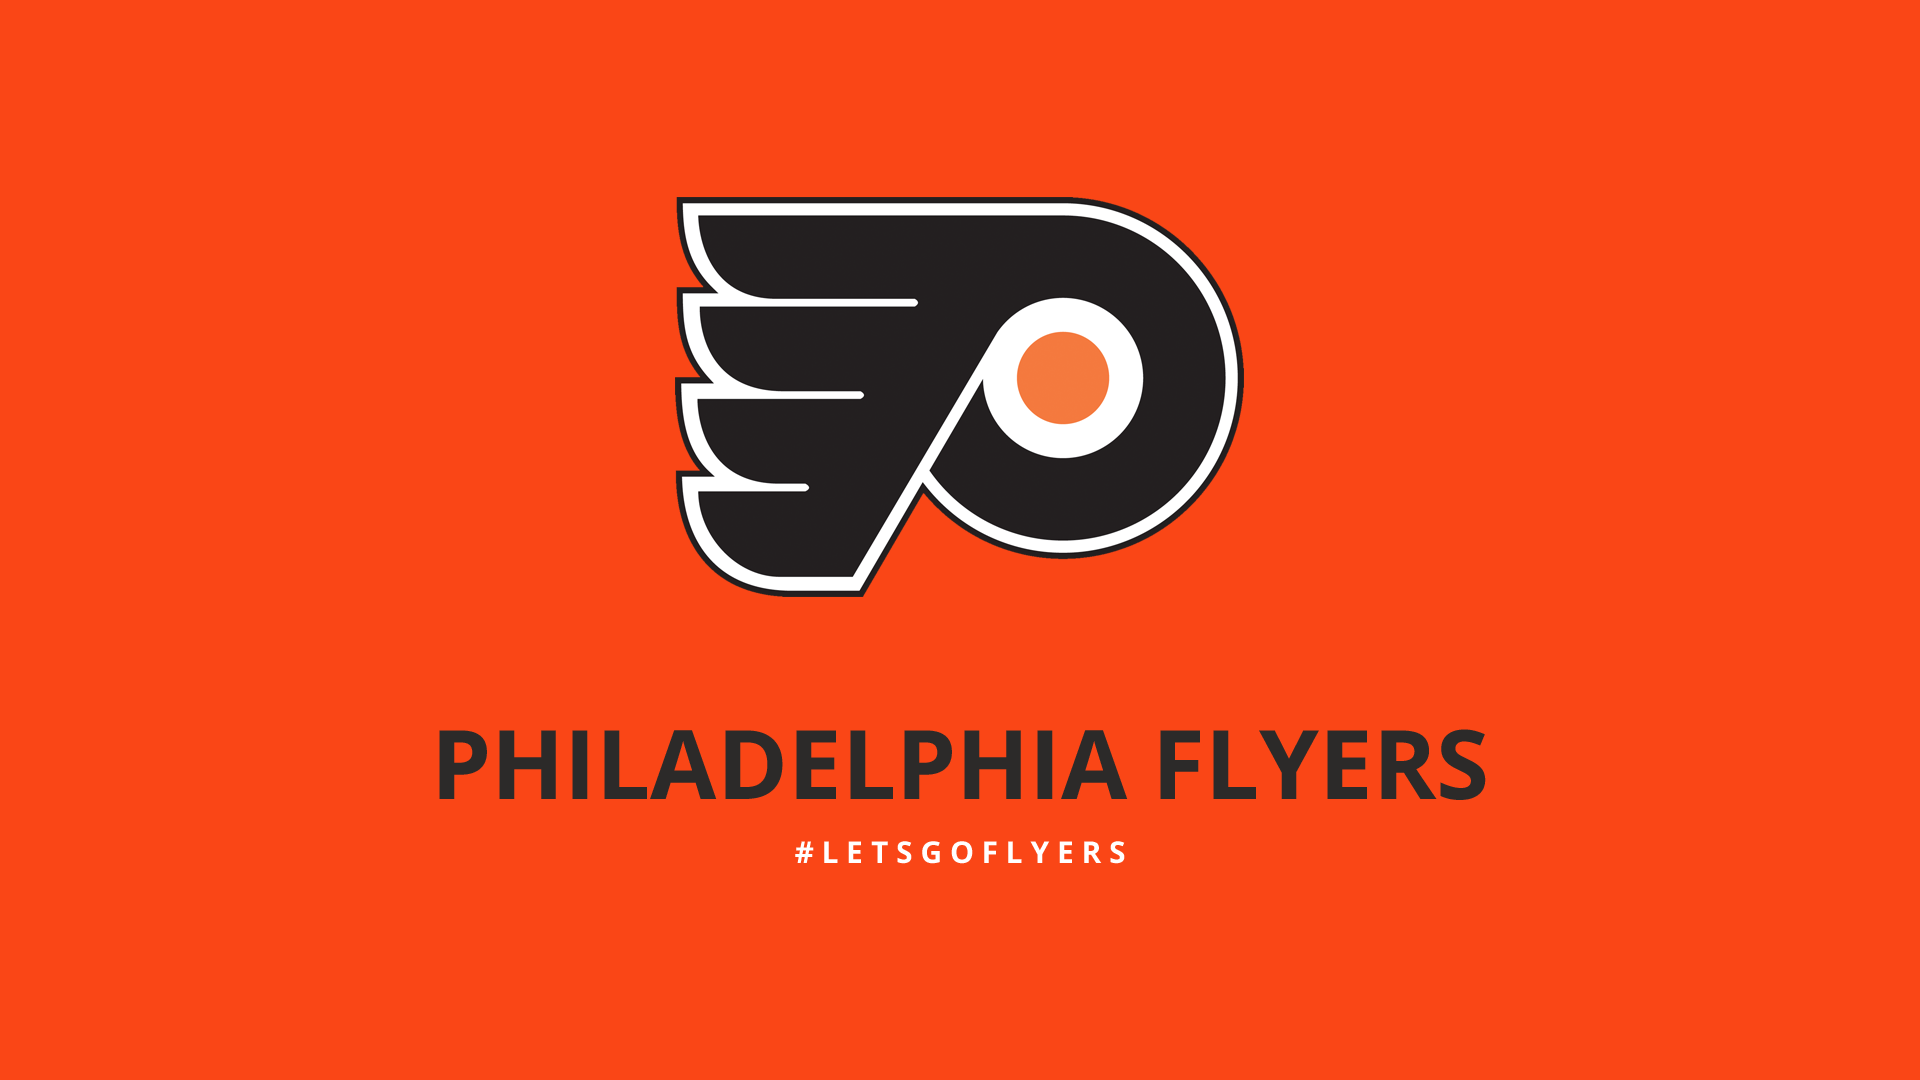 Minimalist Philadelphia Flyers wallpaper by lfiore Images   Frompo 1920x1080